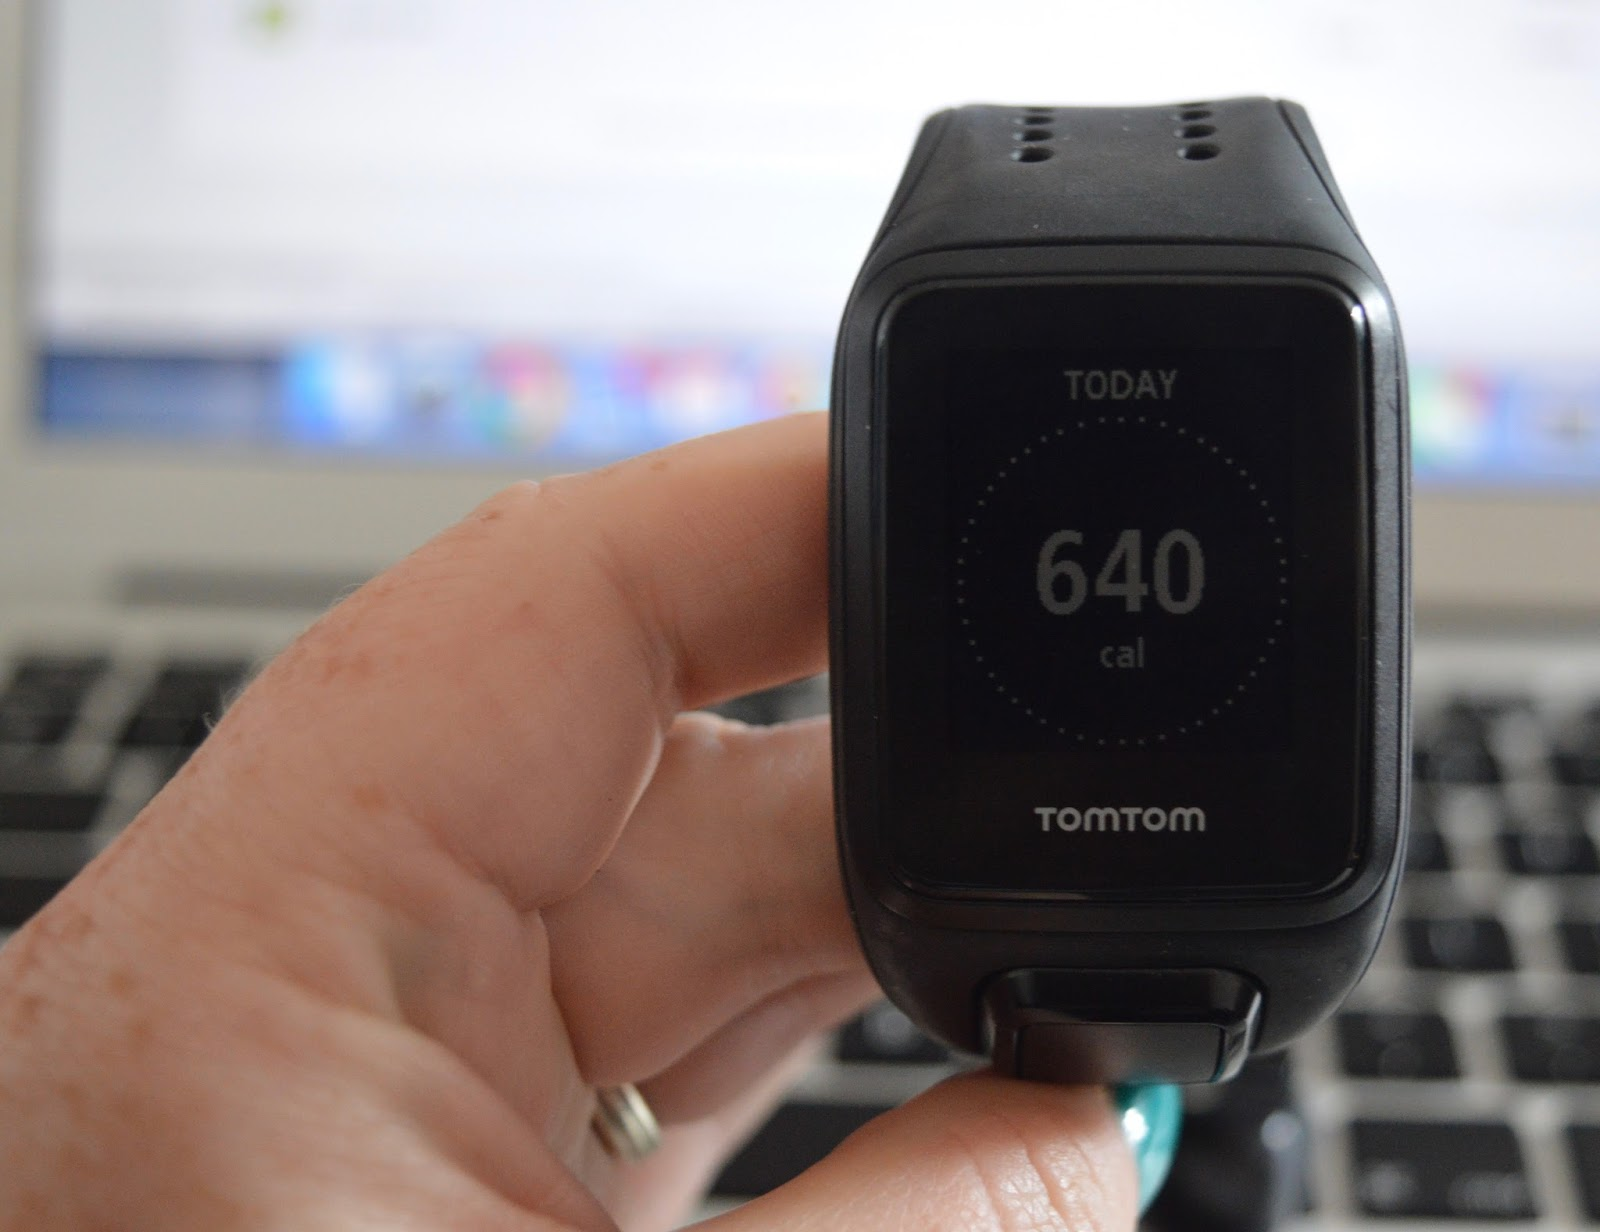 TomTom Spark Cardio + Music GPS Fitness Watch + Bluetooth headphones - A Review